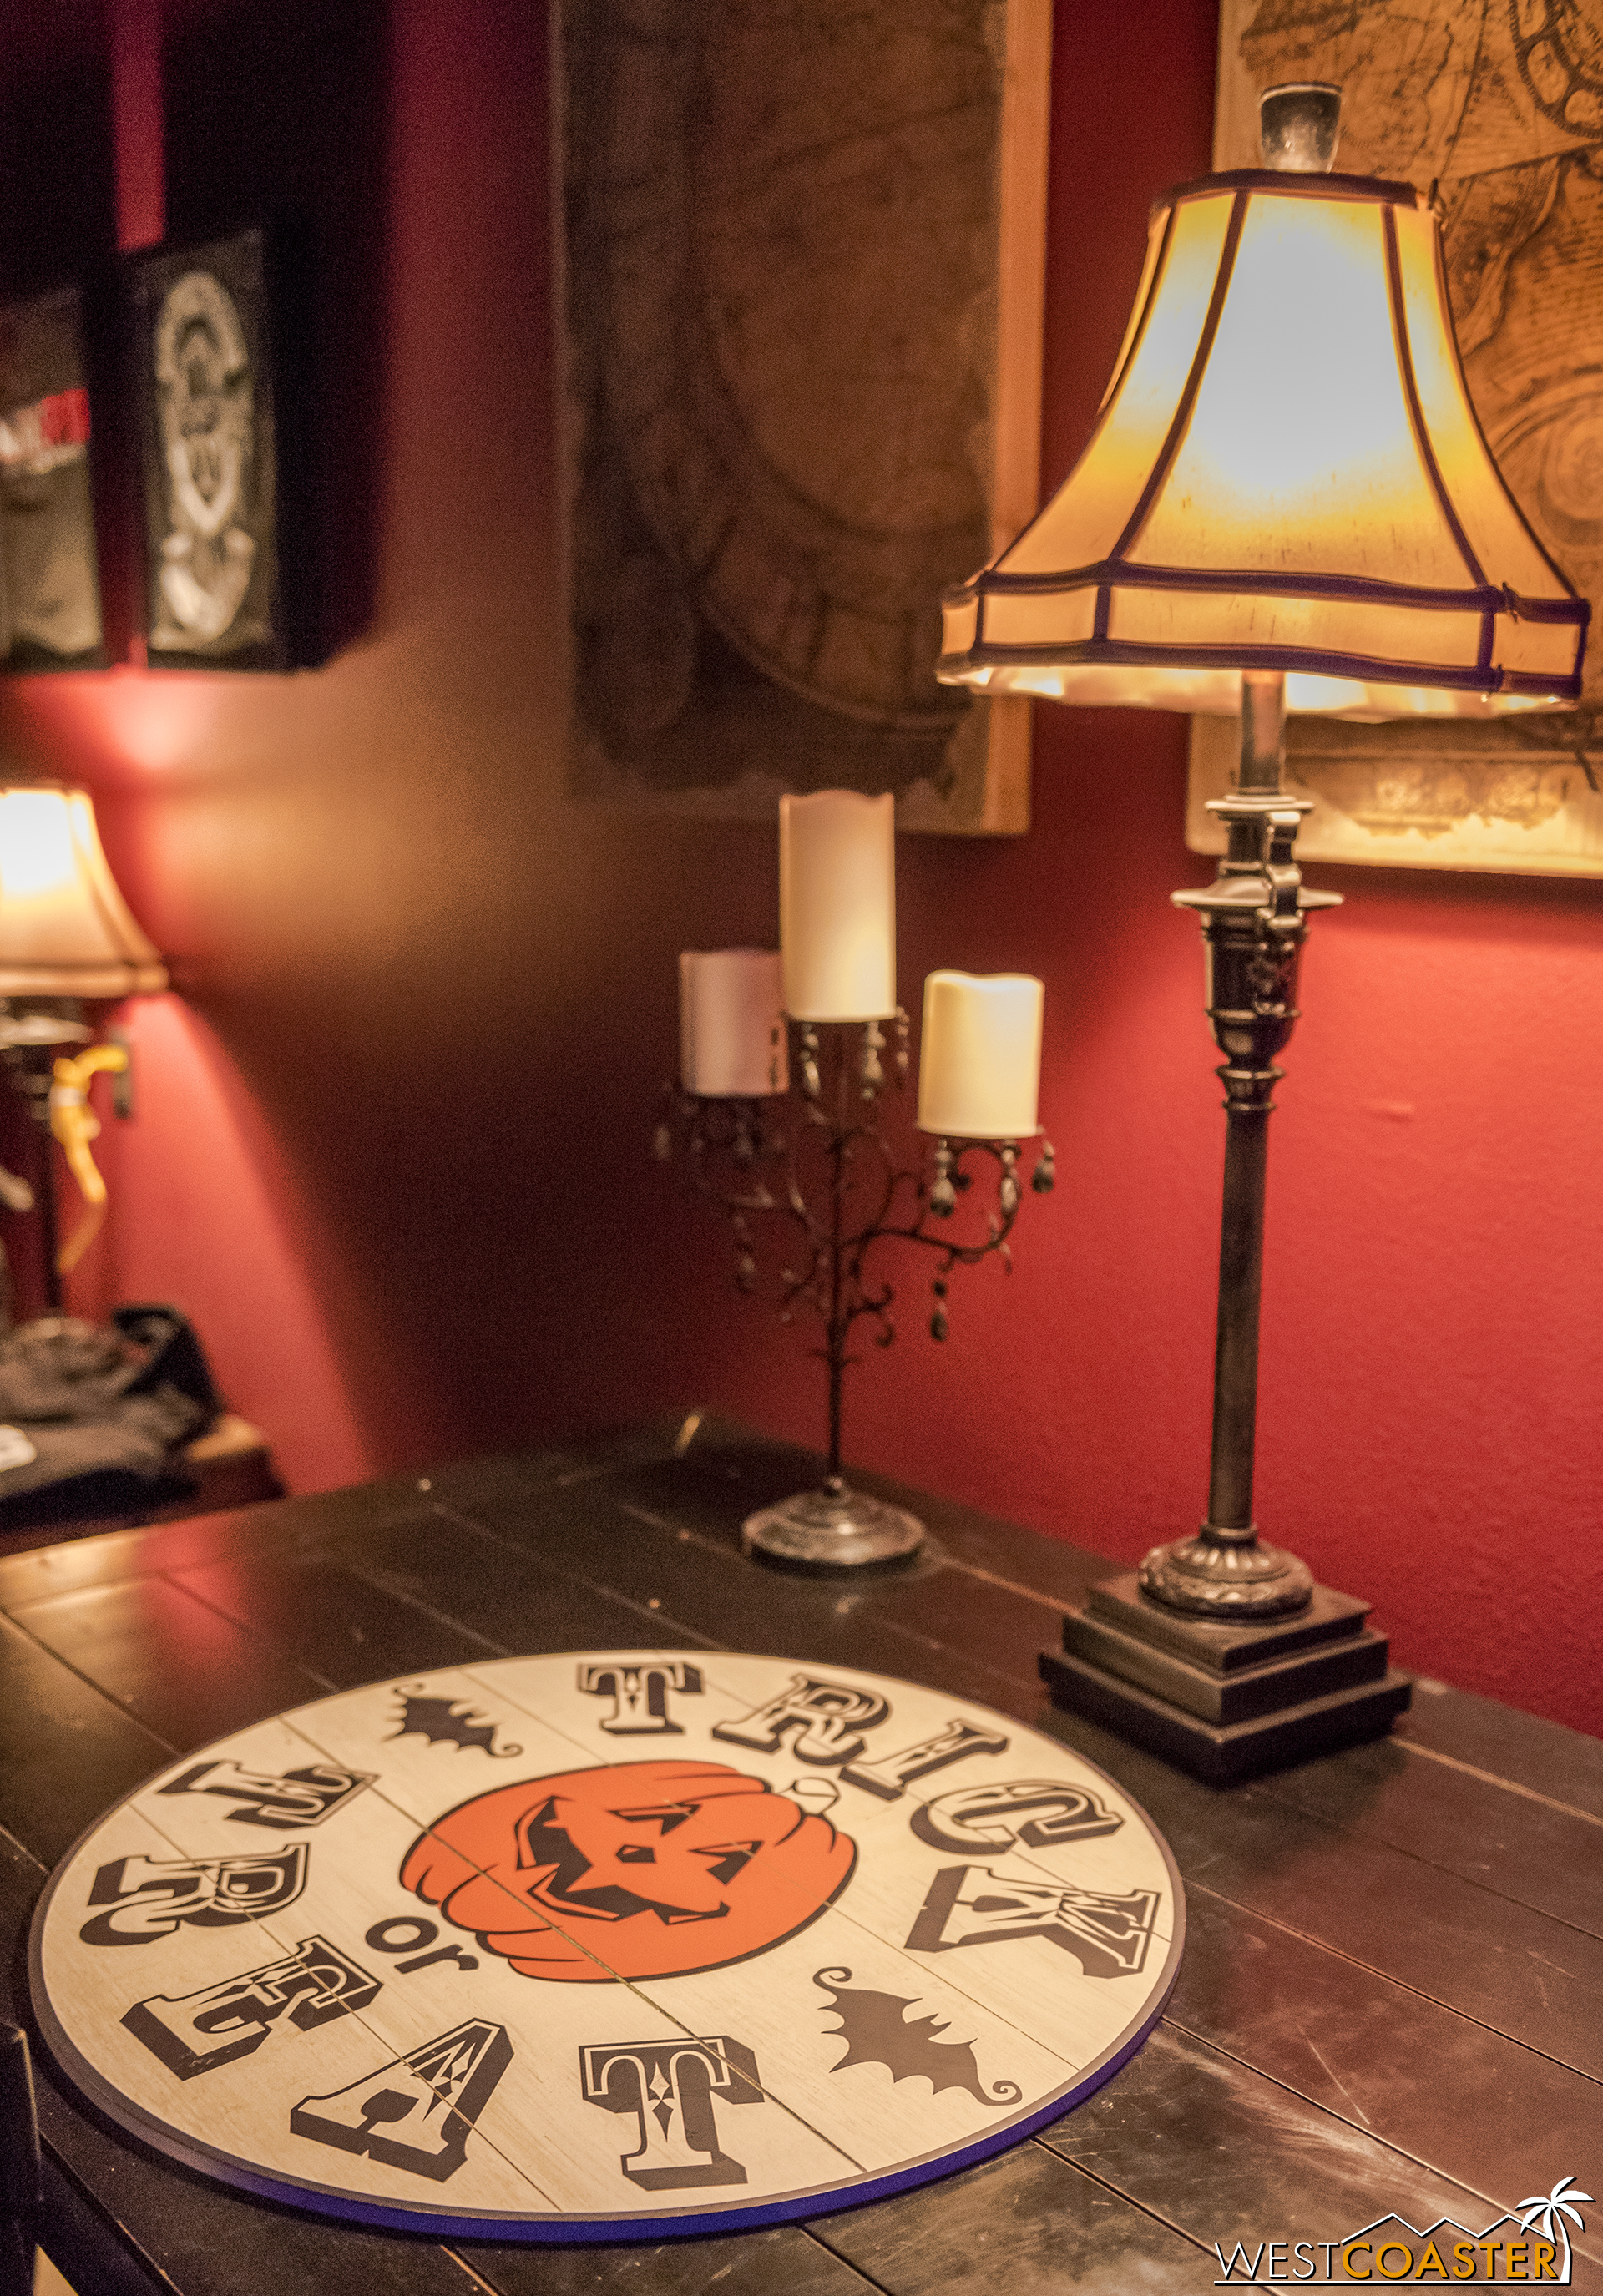 Fans of Knott's Scary Farm may appreciate the details and ambiance put forth here.